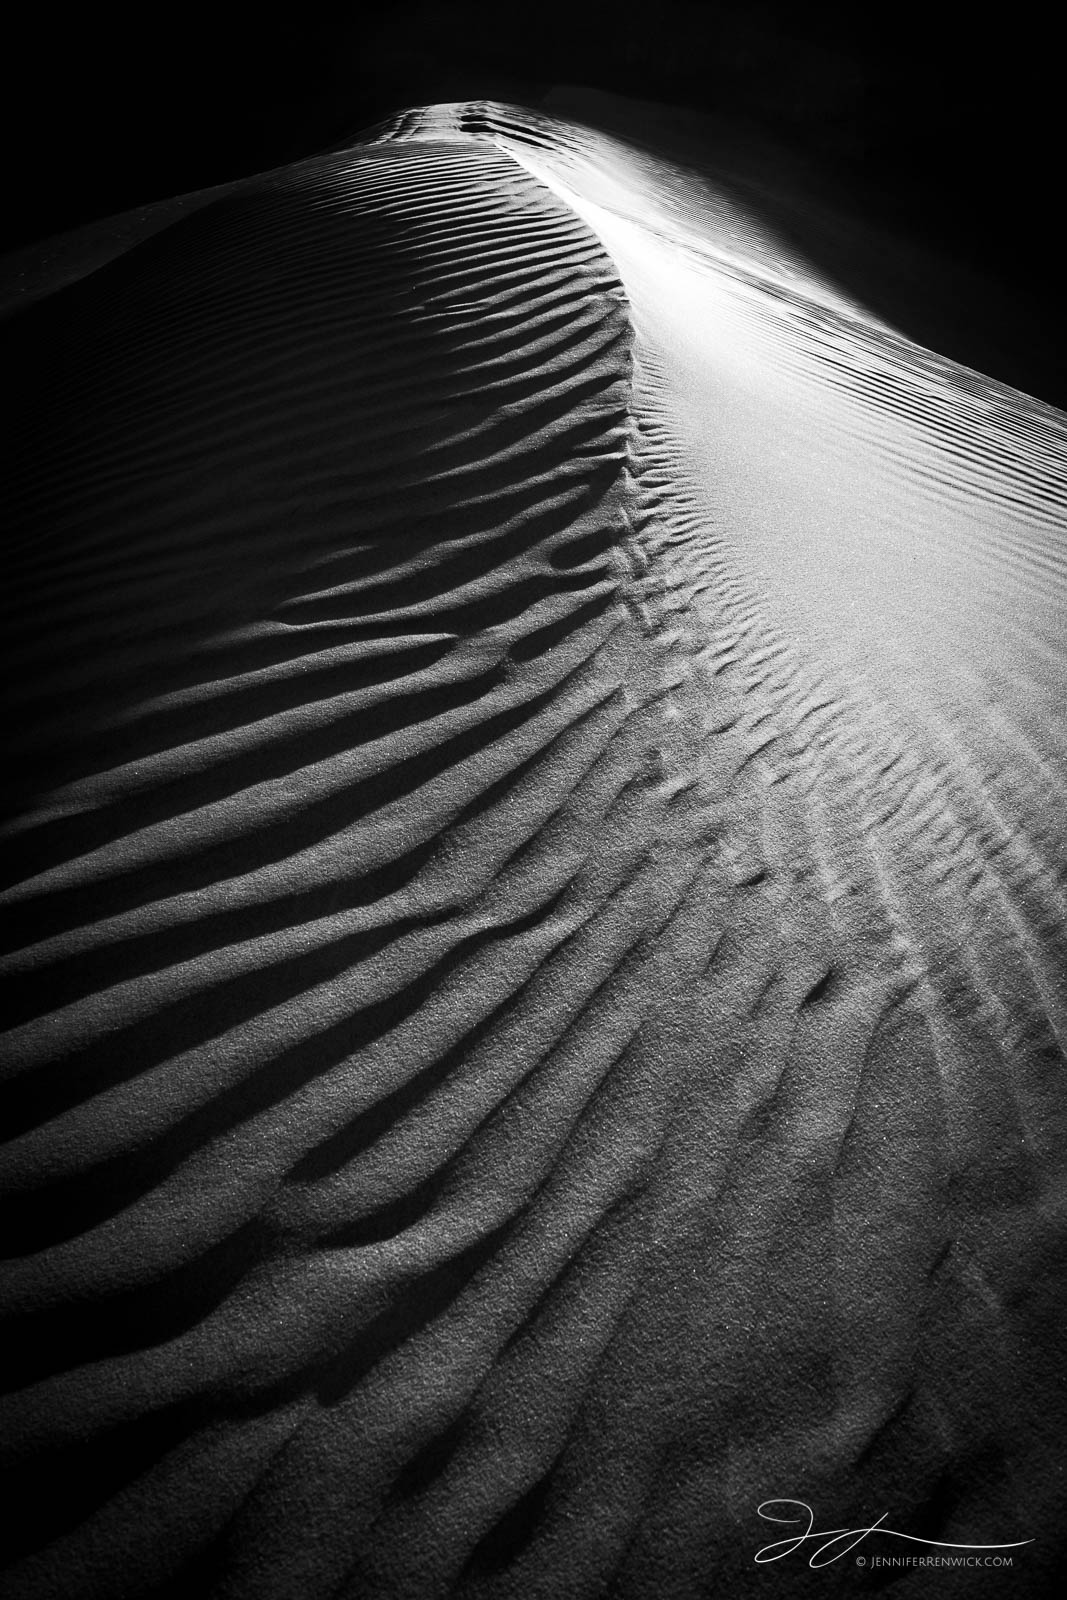 Sand ripples create a pattern on the slope of a dune.